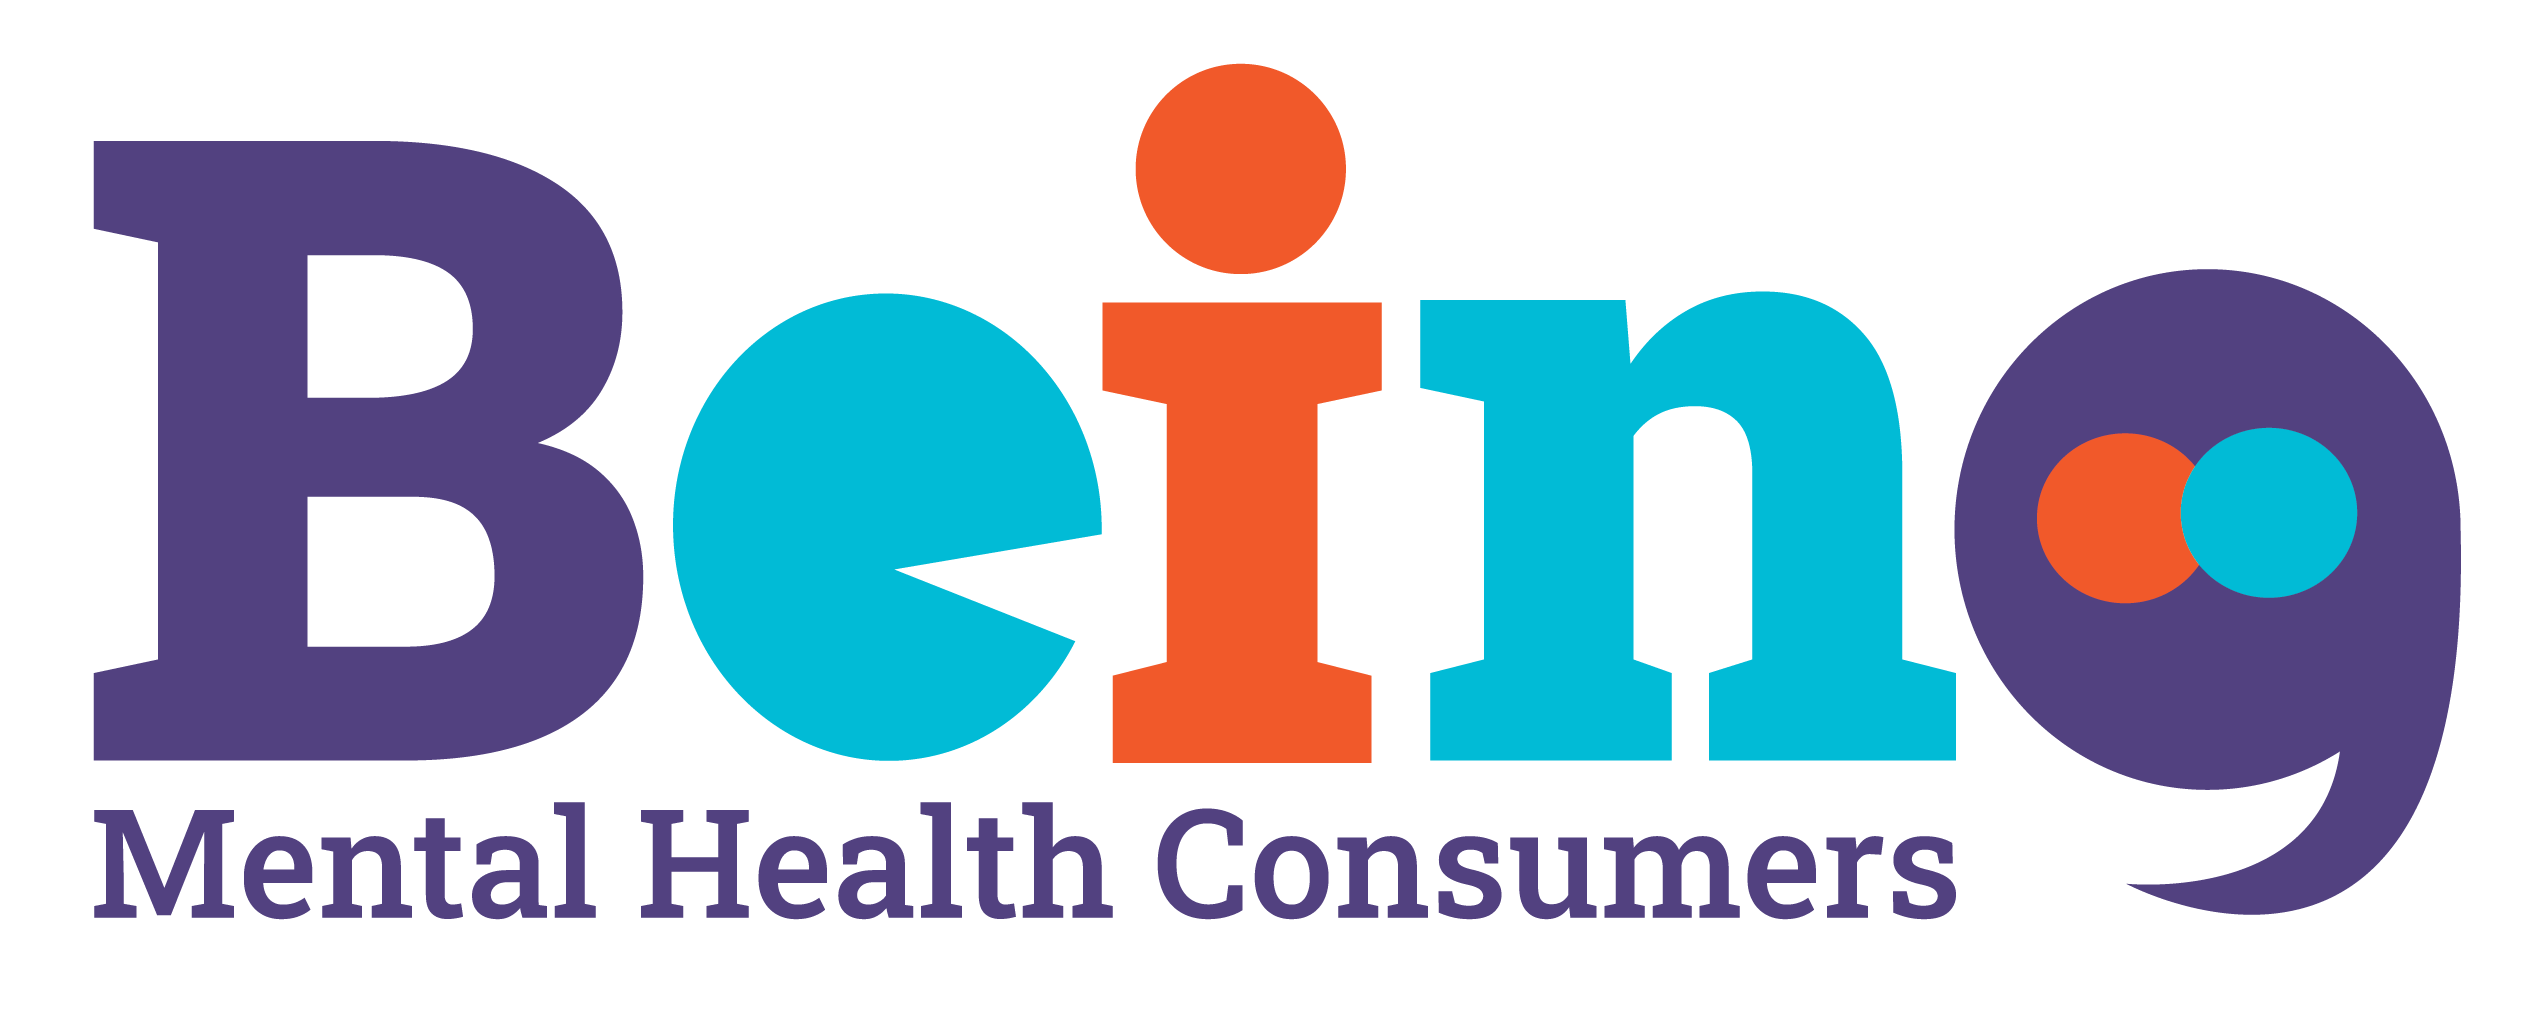 Being – Mental Health Consumers Logo